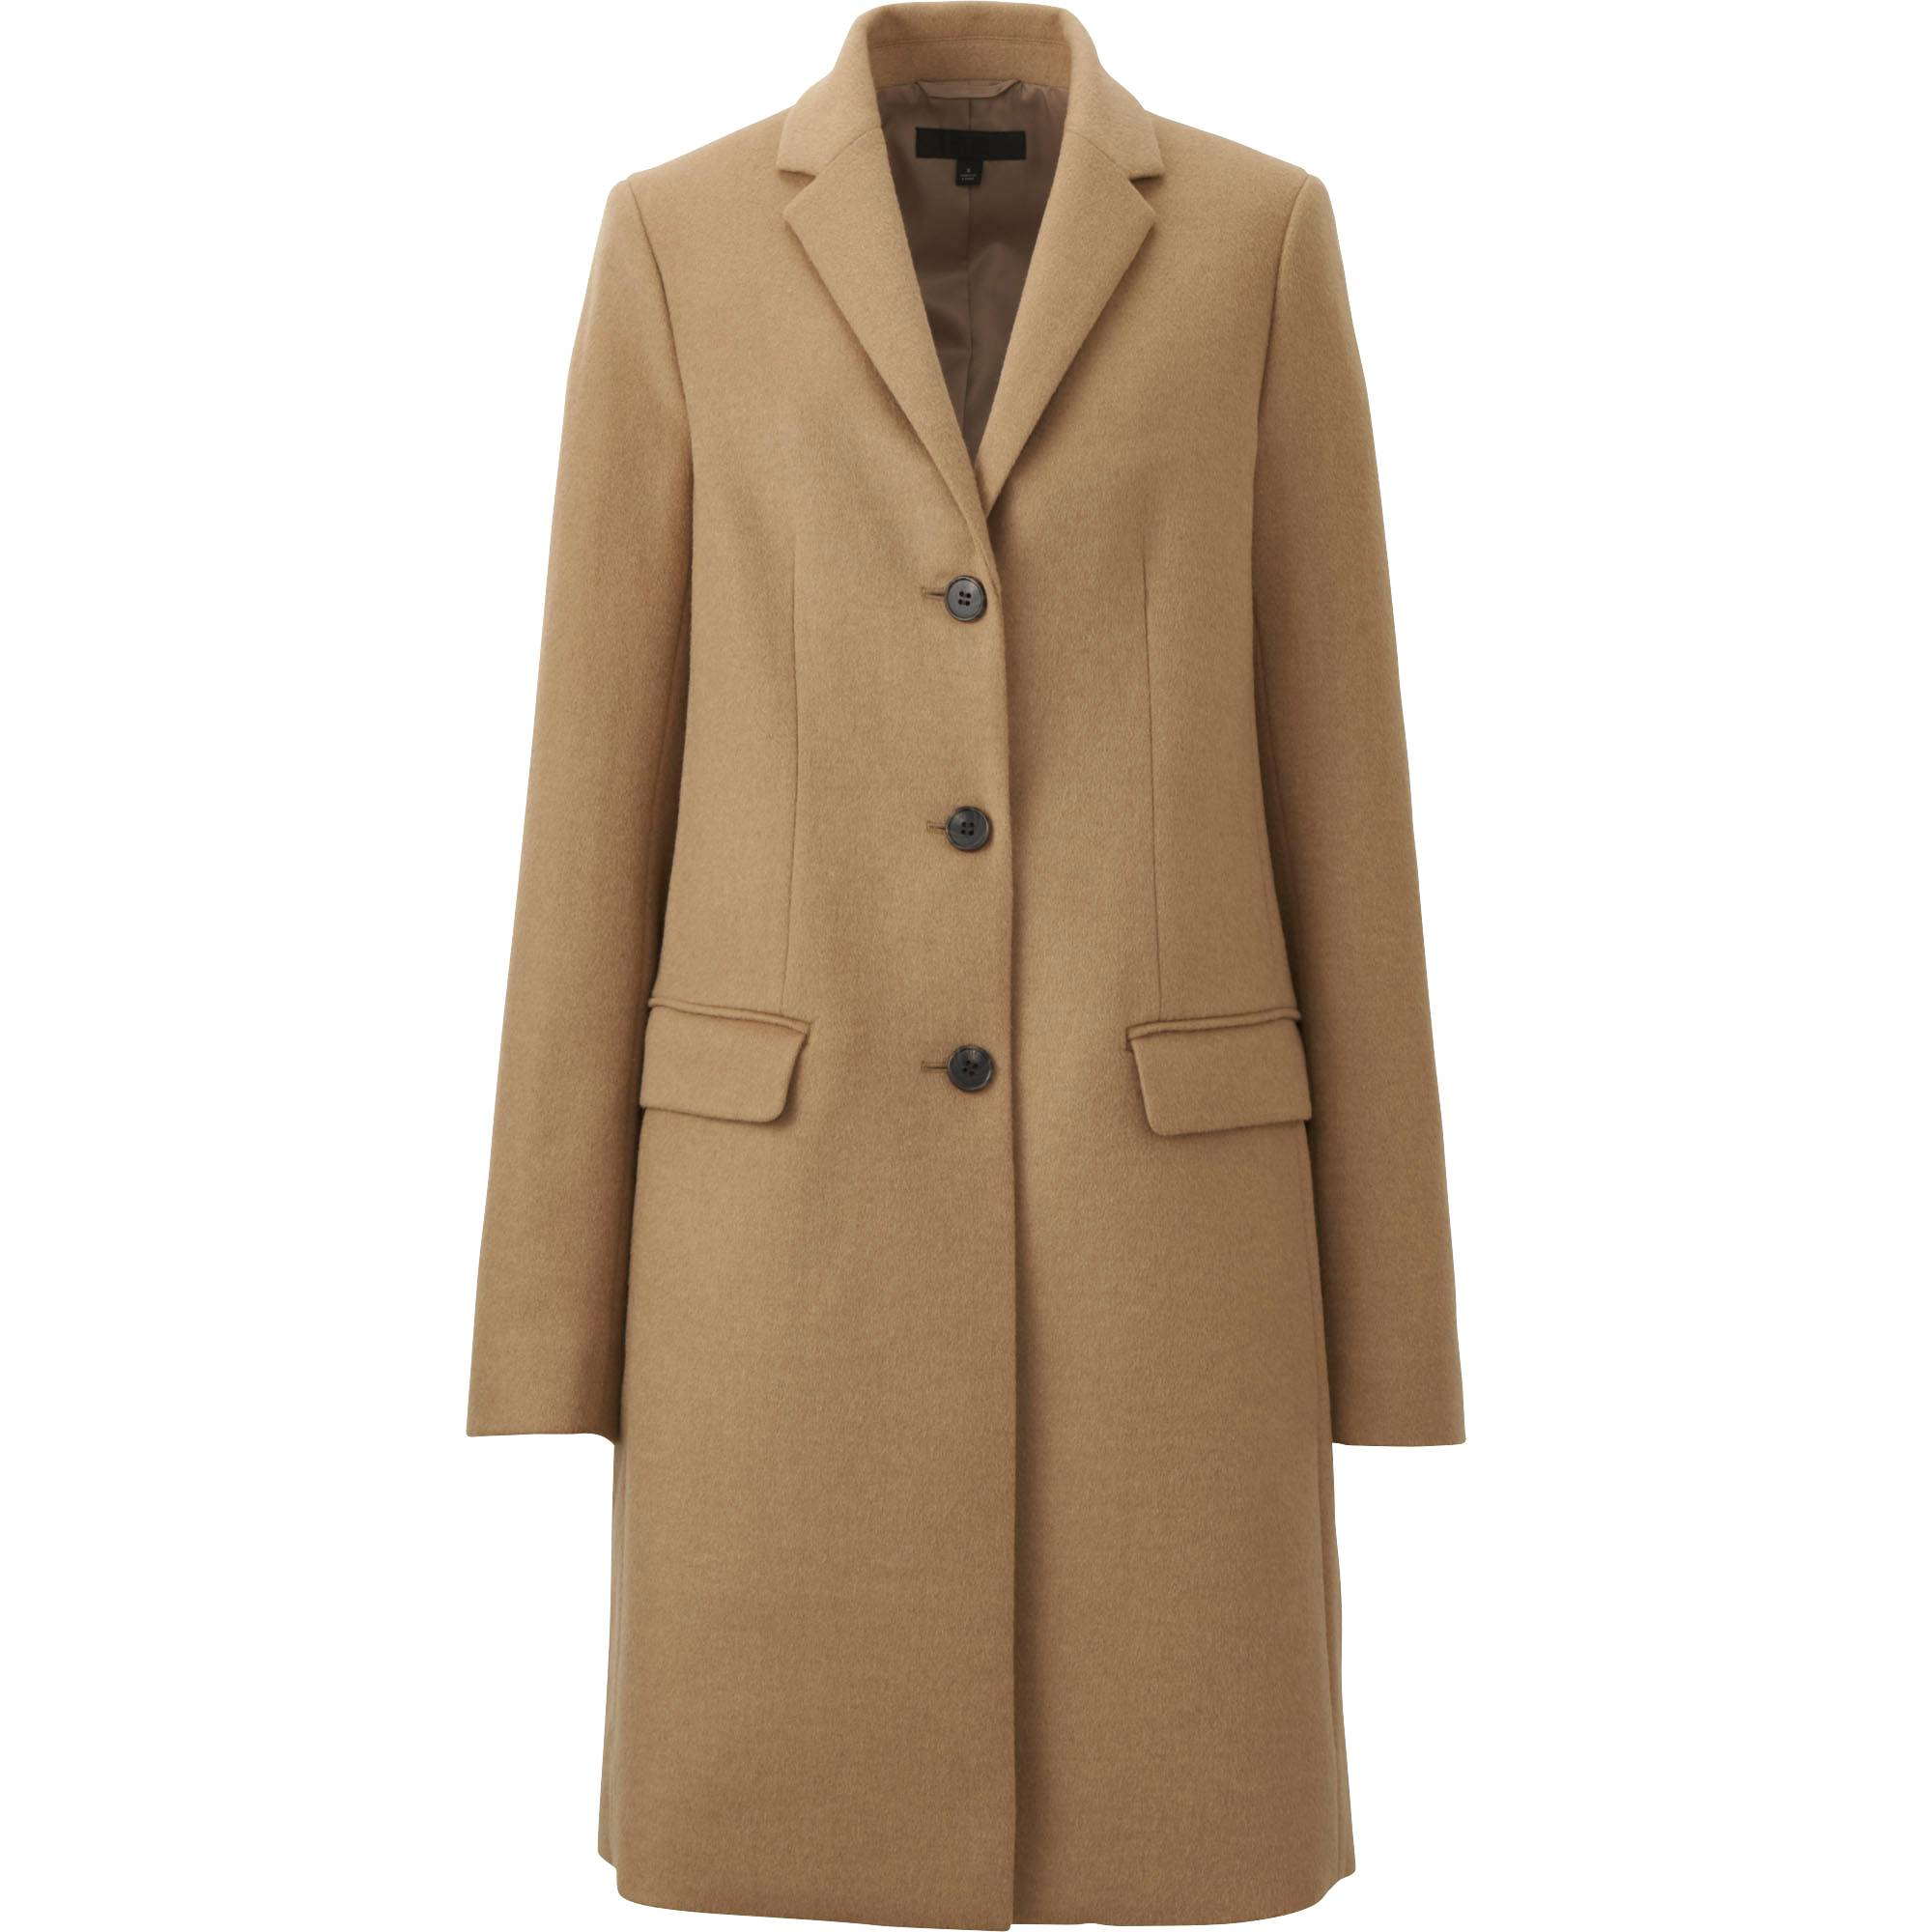 wool coat women wool cashmere chester coat, beige, small zmlonzo